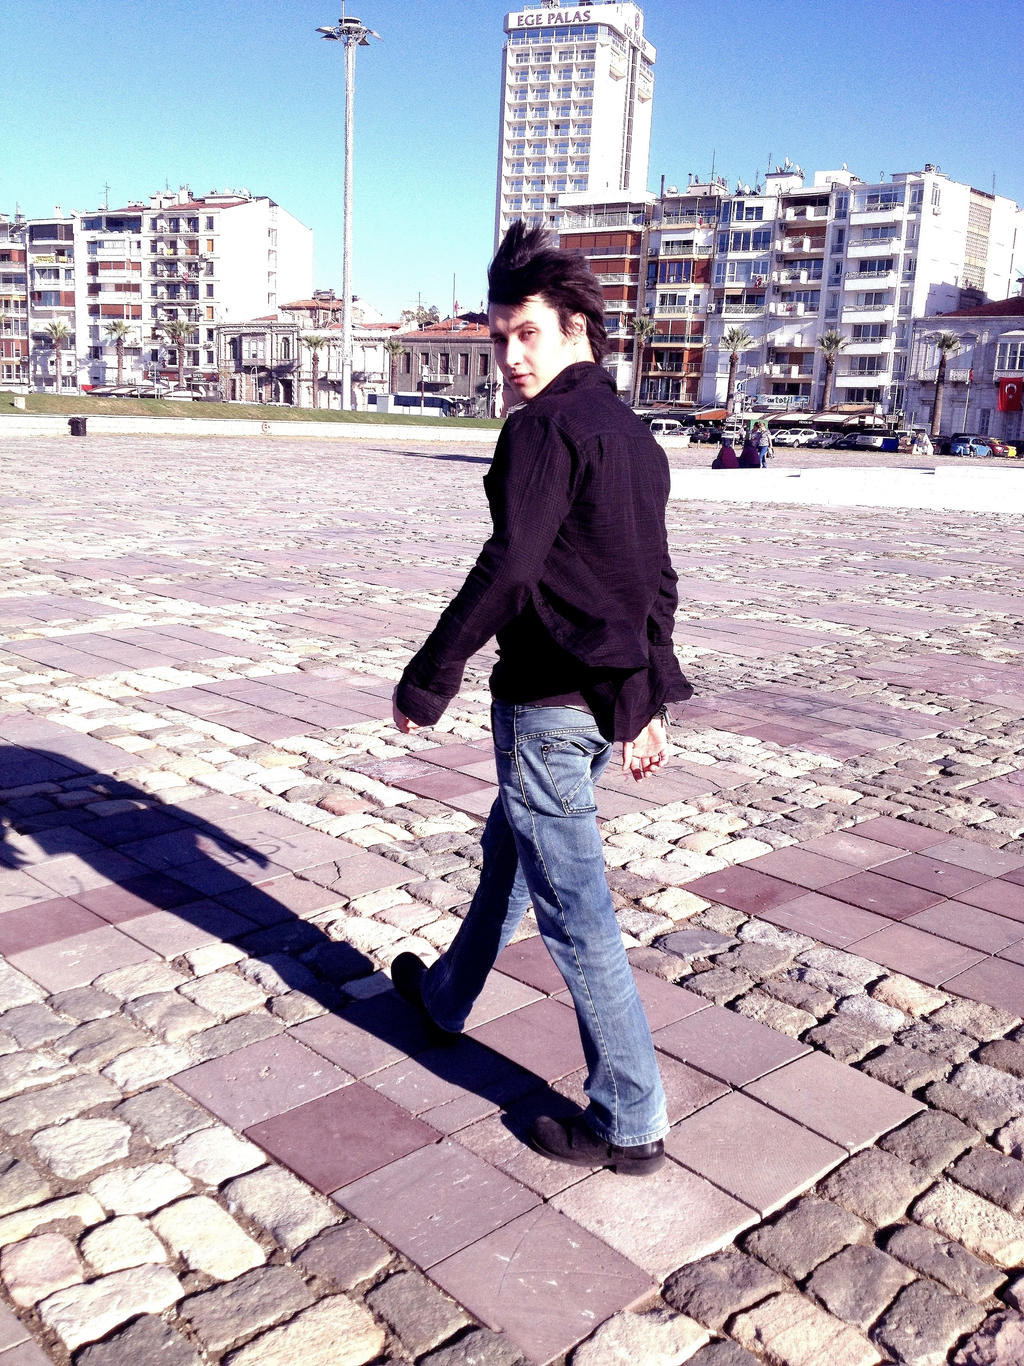 speed dating izmir Speed dating antalya - rich woman looking for older woman & younger man i'm laid back and get along with everyone looking for an old soul like myself i'm a lady.